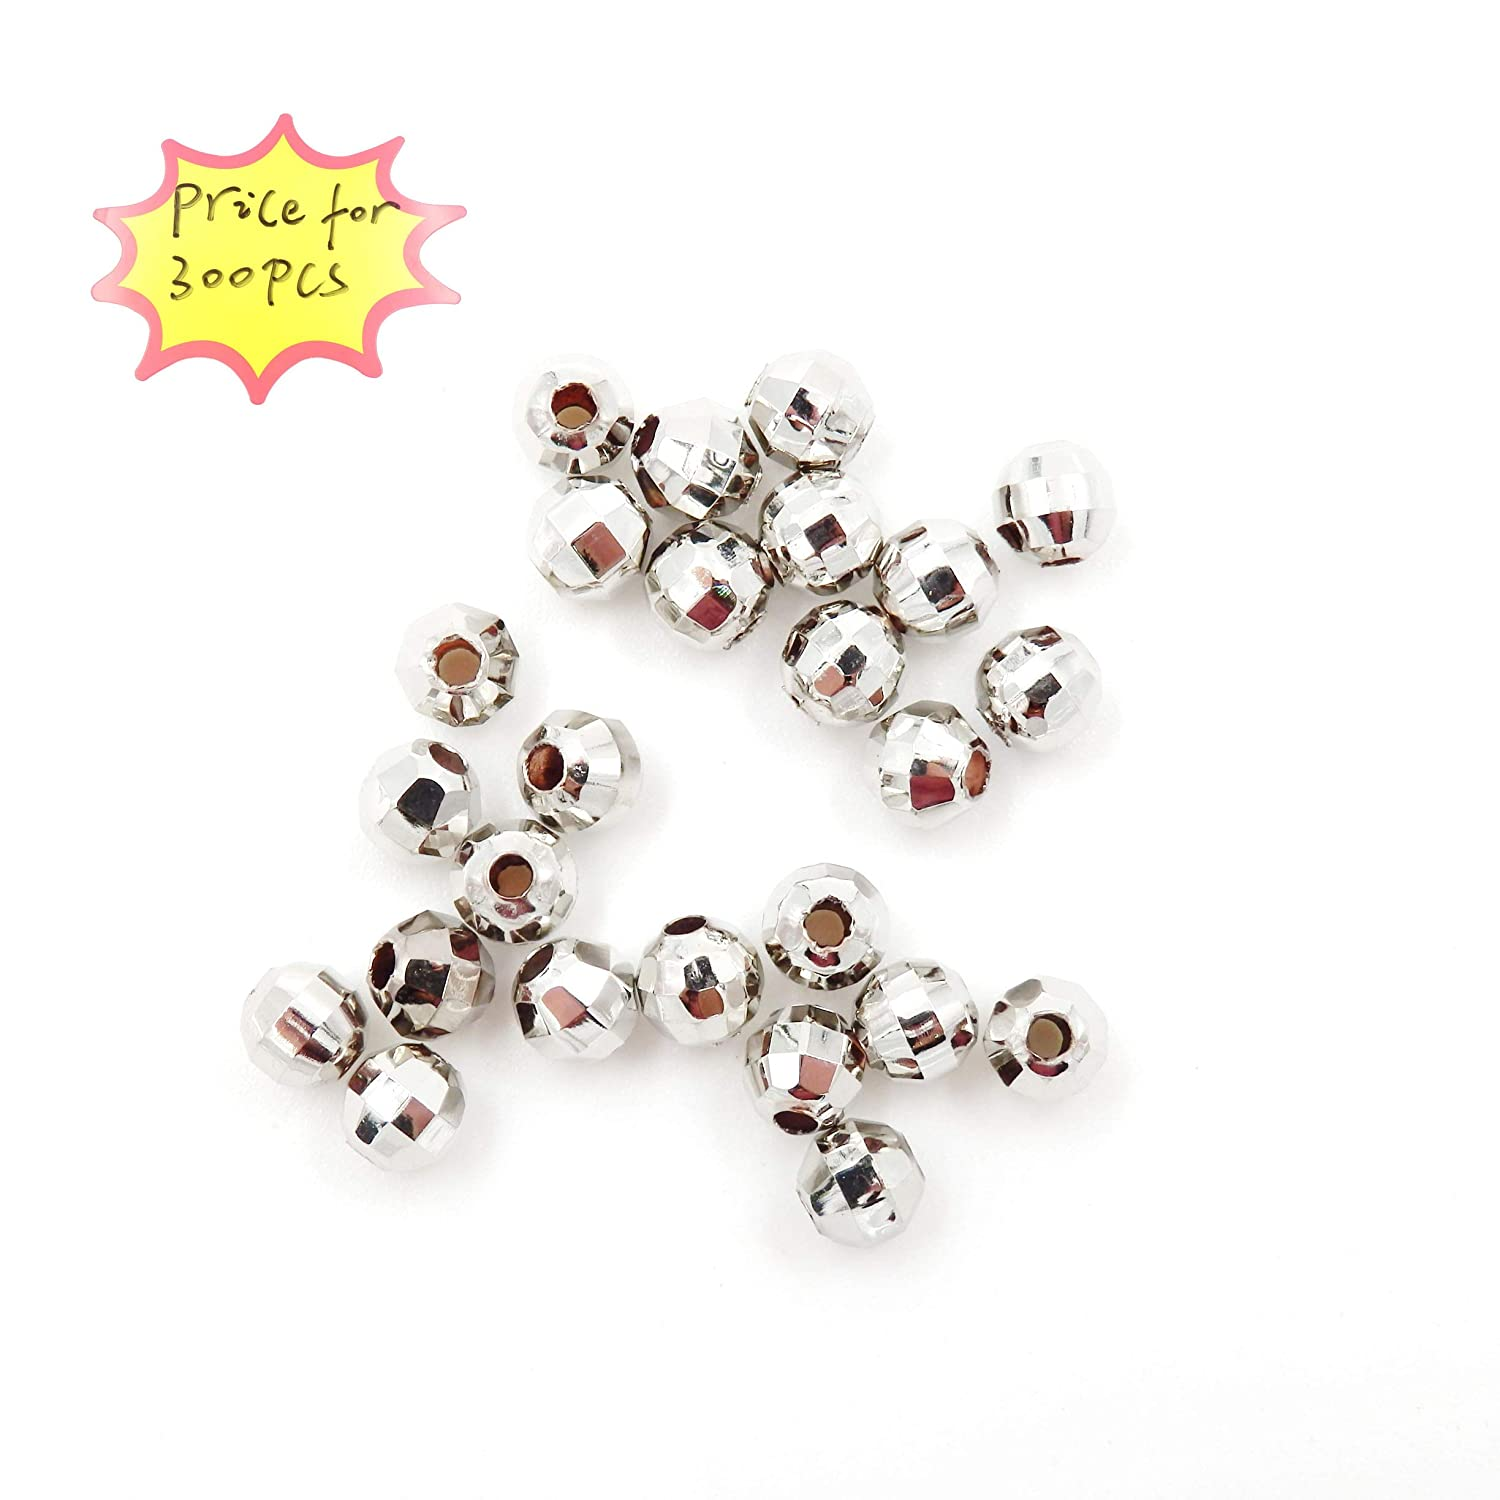 Sold per Bag 100pcs Inside Metal Beads for Jewelry Making 8mm Gold Jewelry findings